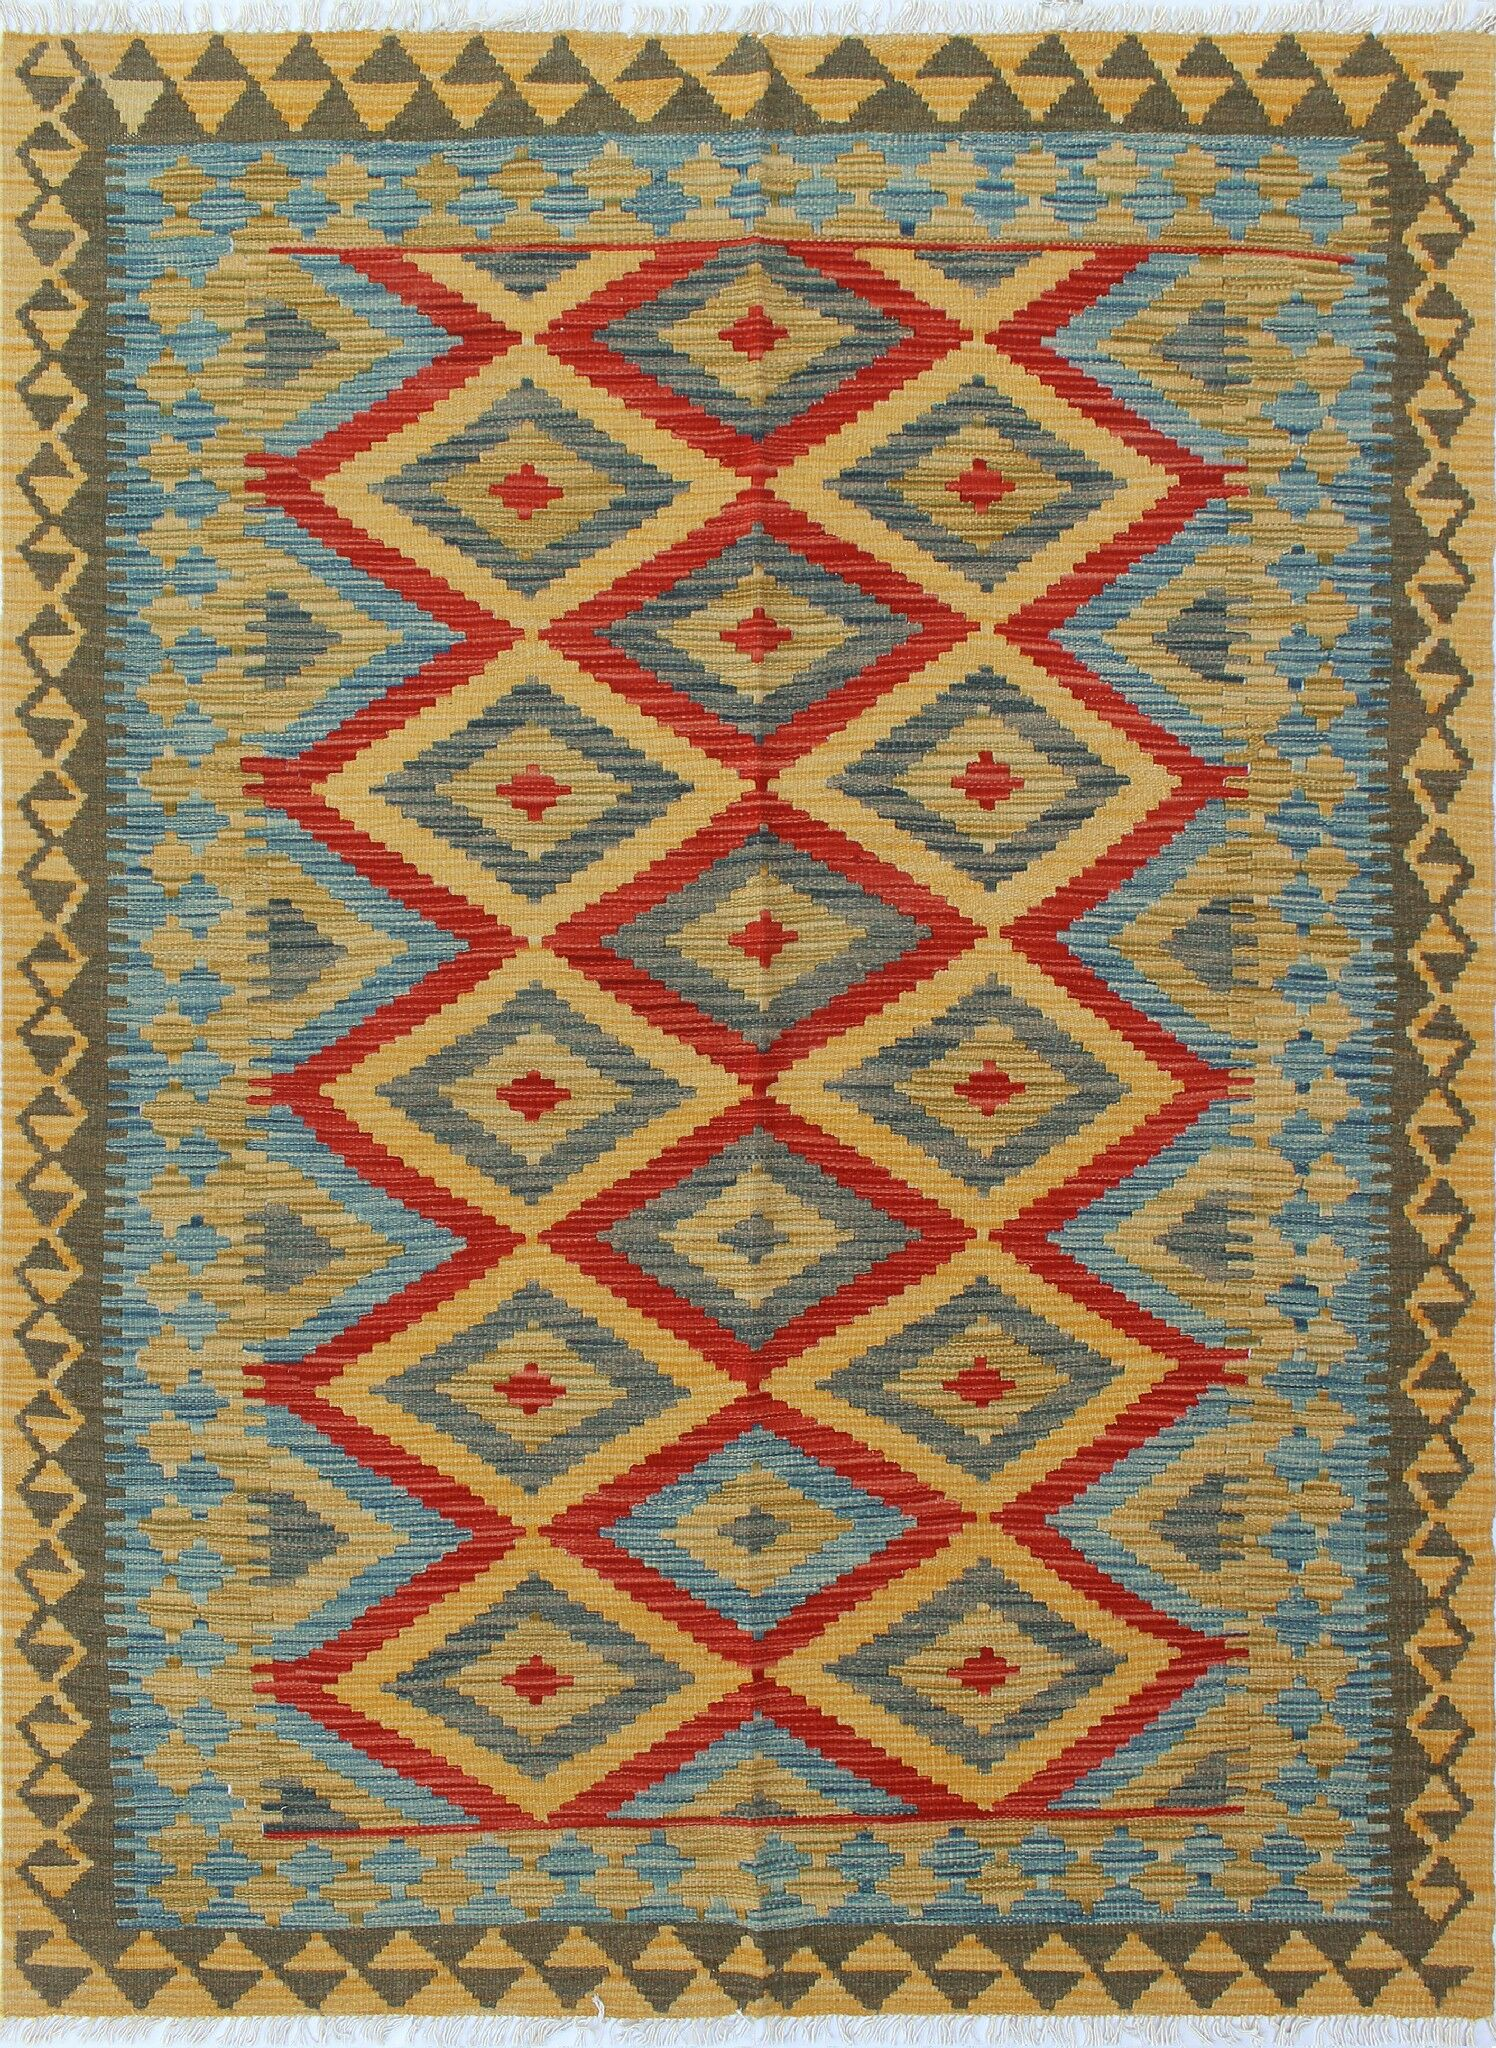 Kilim Hand-Woven Wool Gold Area Rug Size: 4'10